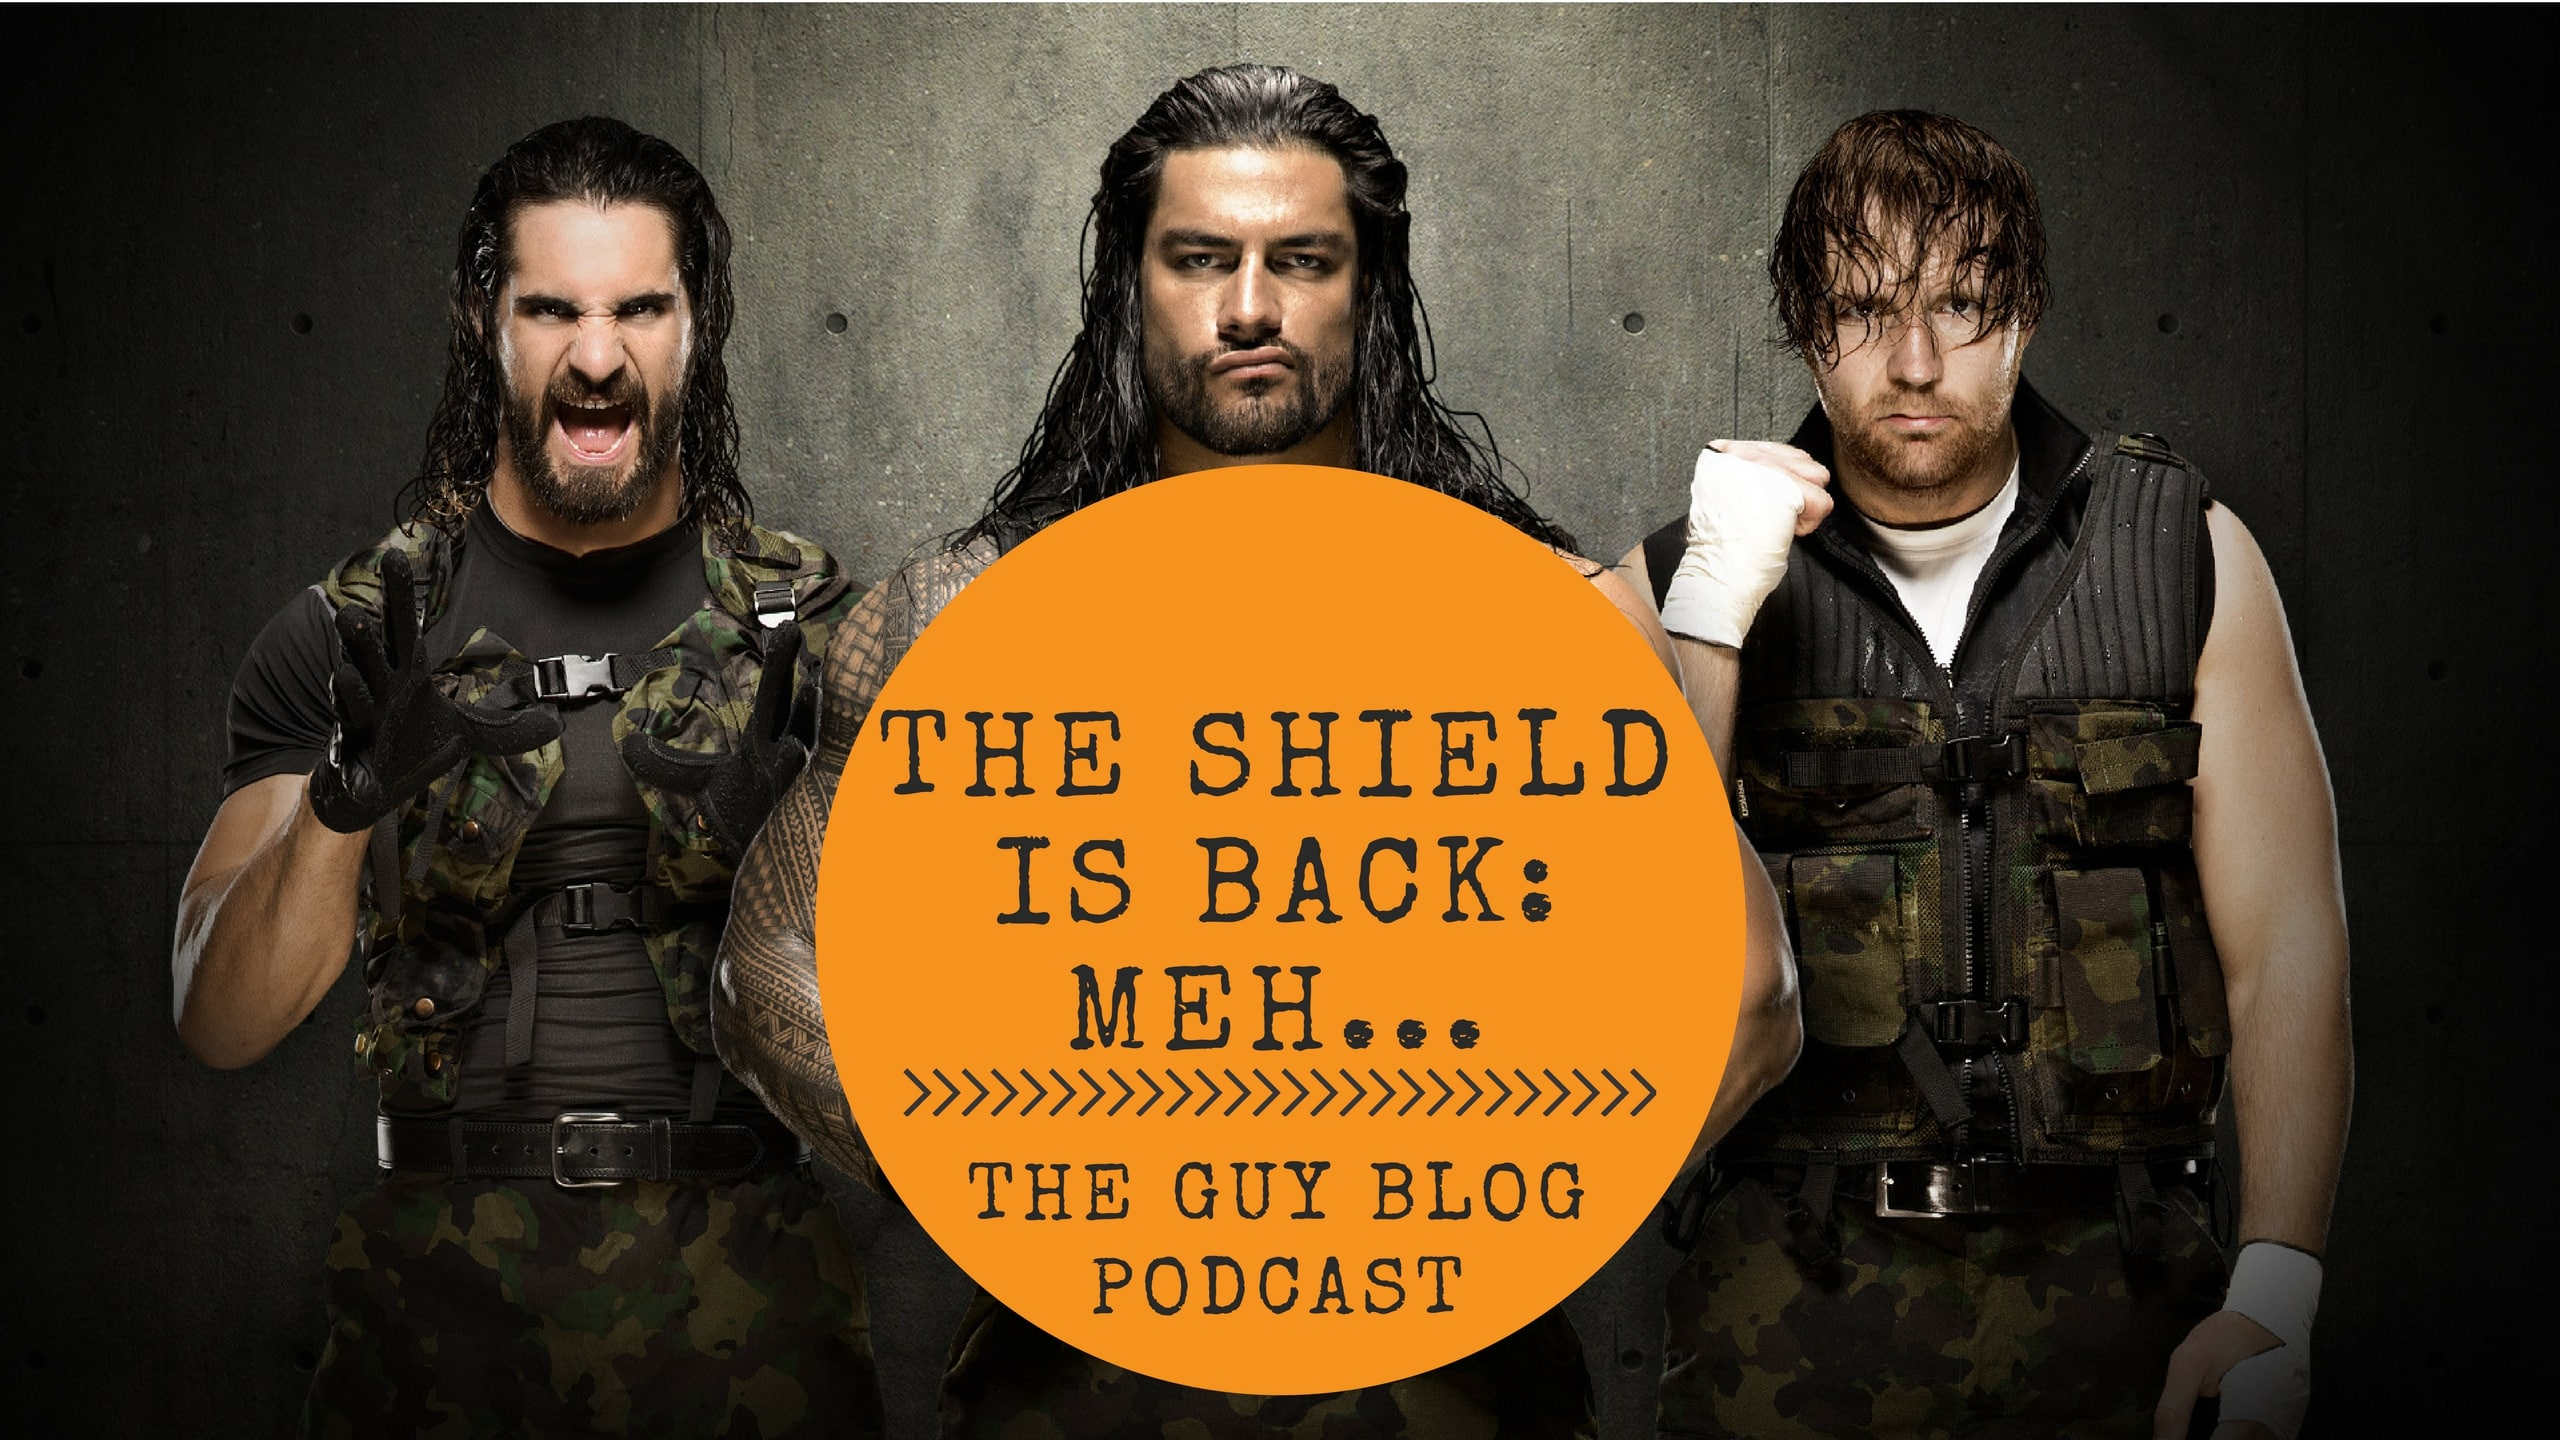 TGBP 041 The Shield is Back: Meh